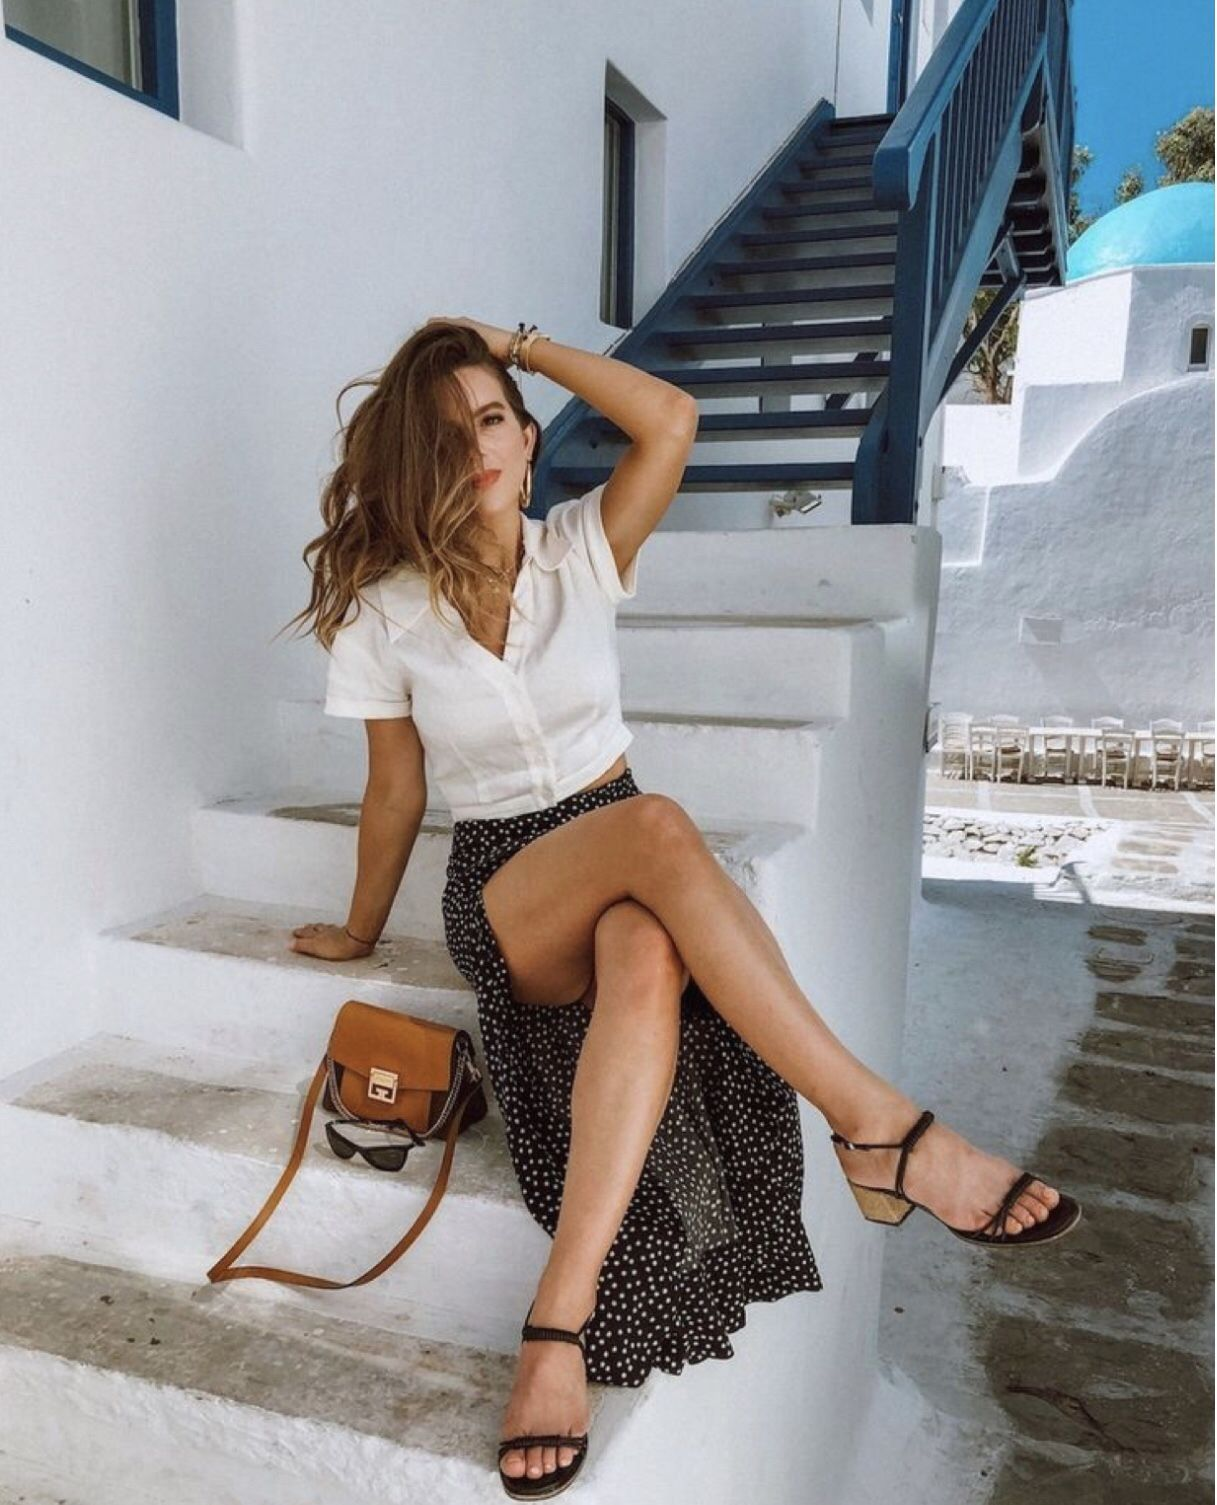 5 Fashion Trends for Summer 2019 - Joanna Rahier | 1000